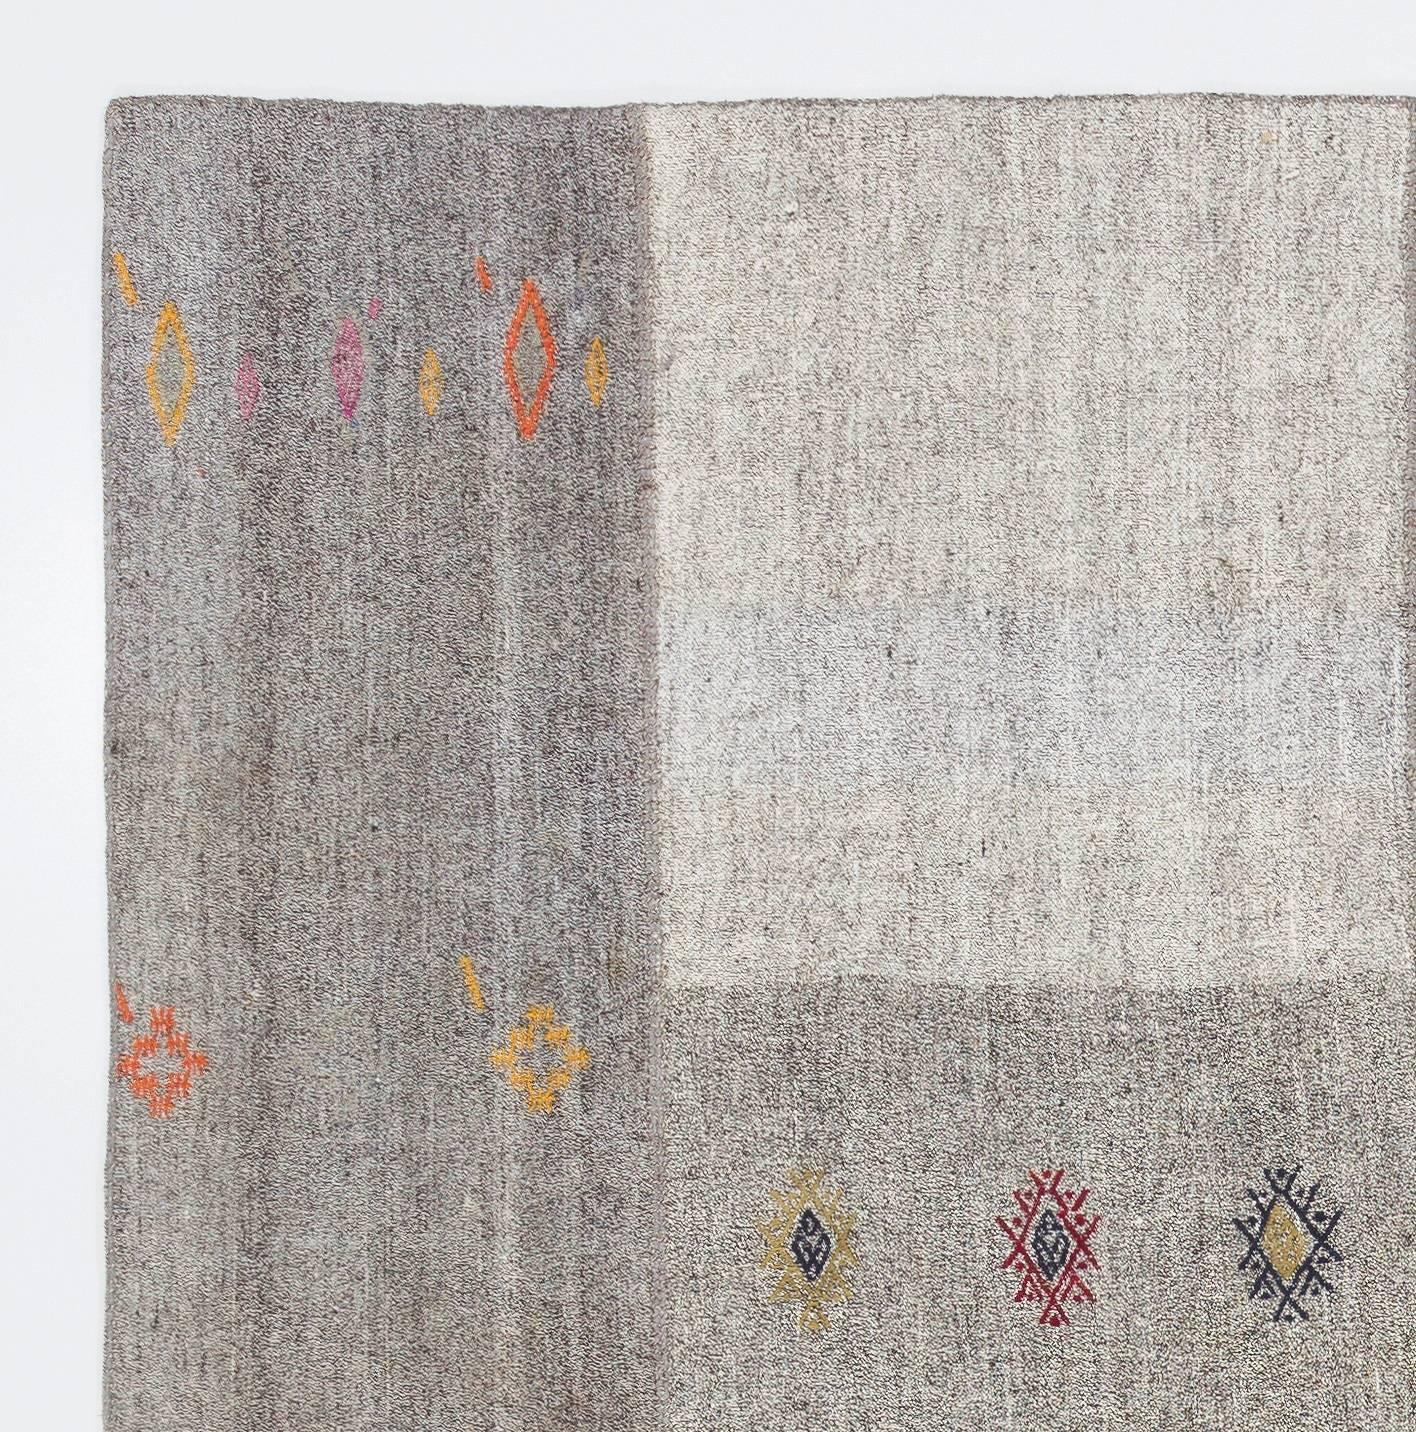 Cotton And Goat Hair Anatolian Kilim Rug For Sale At 1stdibs